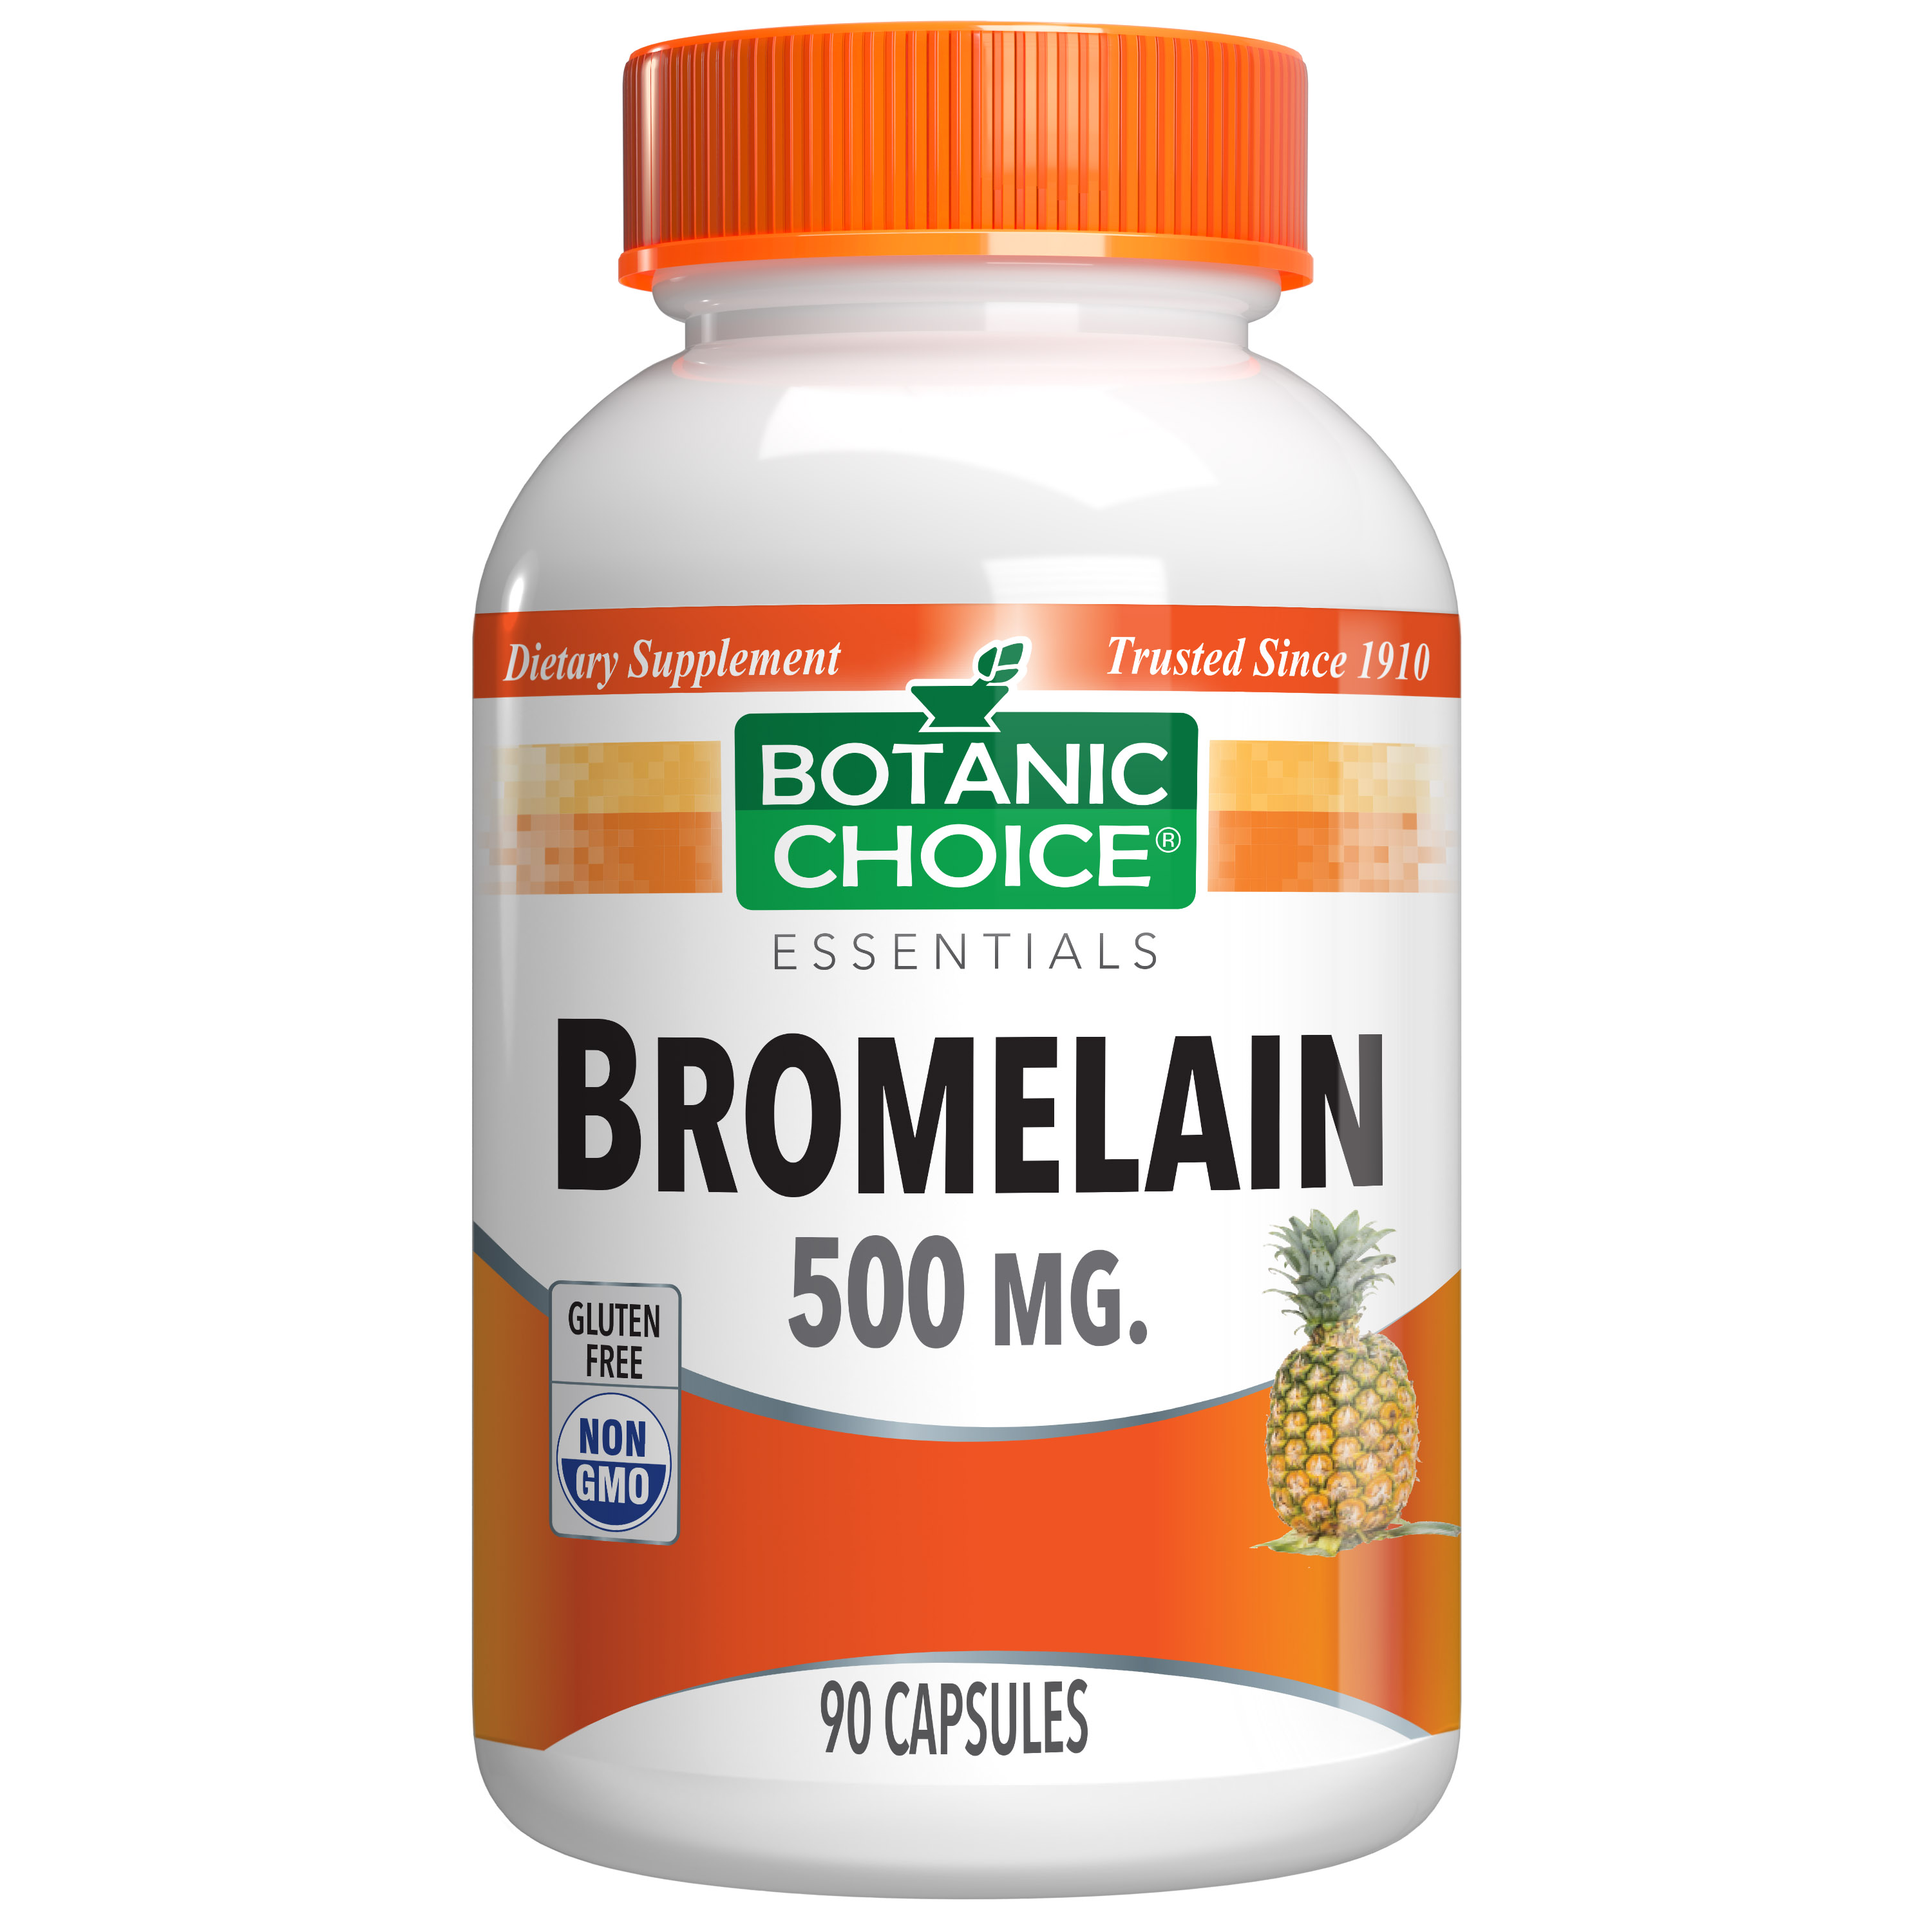 Botanic Choice Bromelain Capsules 500 mg - Joint Support Supplement - 90 Capsules